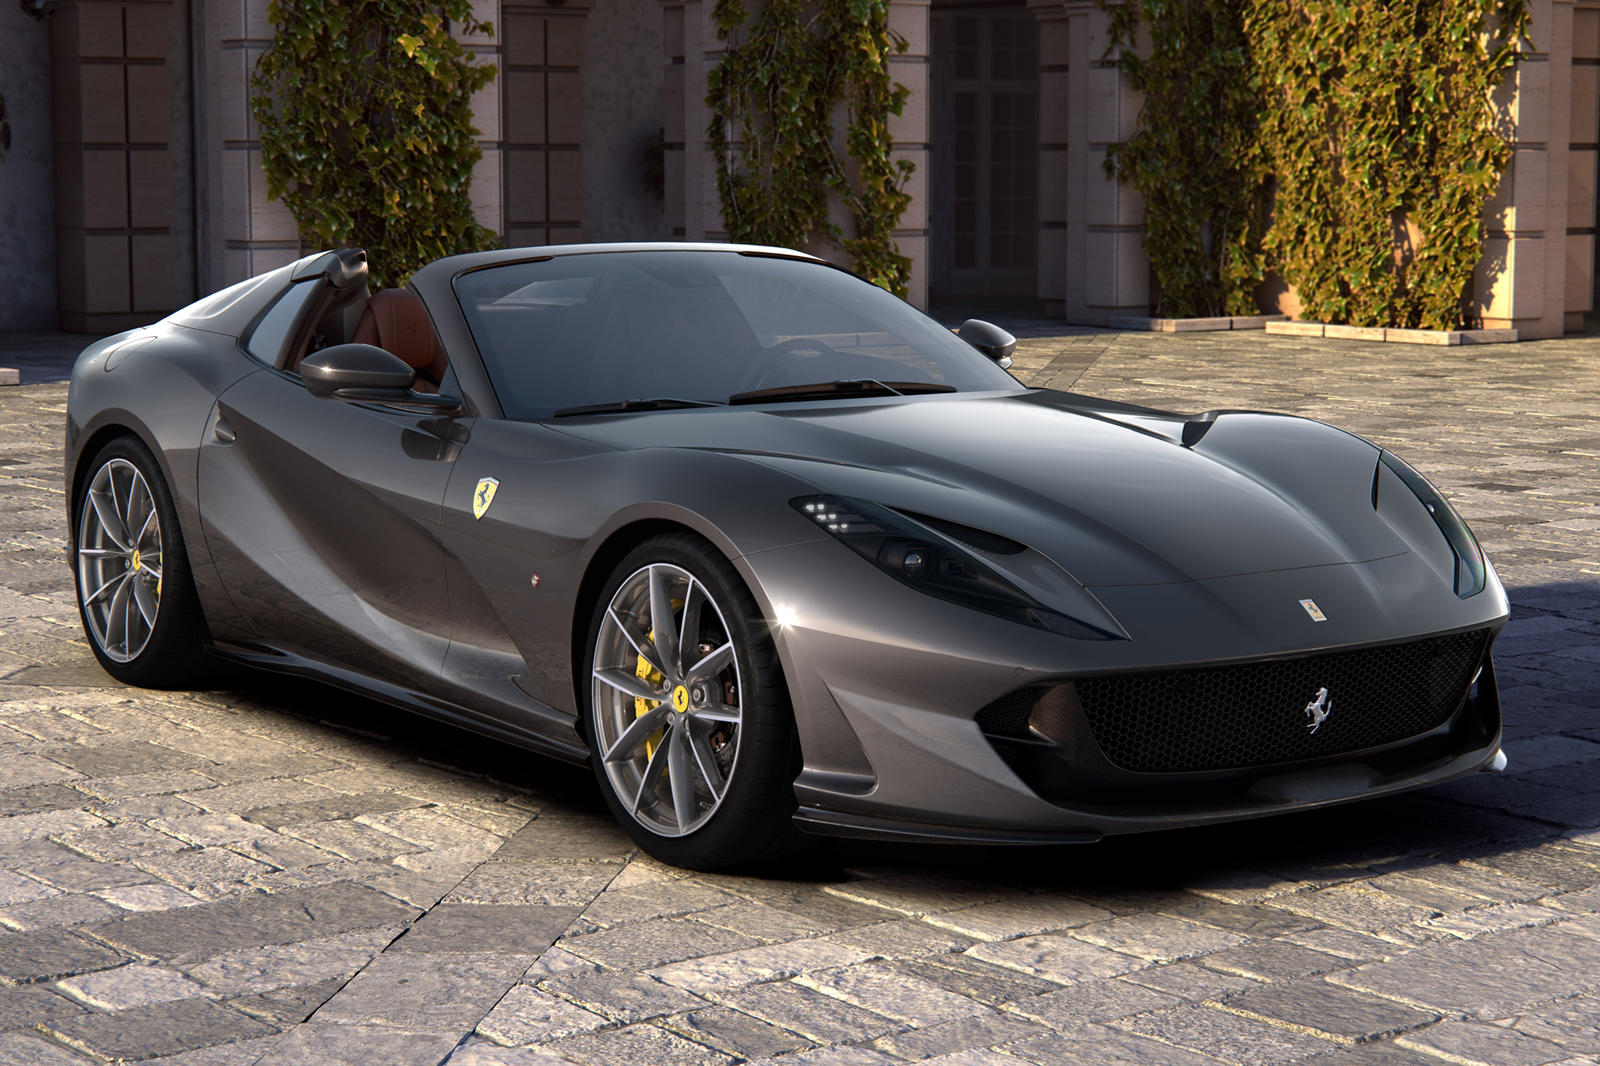 Ferrari 812 Gts Review Trims Specs Price New Interior Features Exterior Design And Specifications Carbuzz